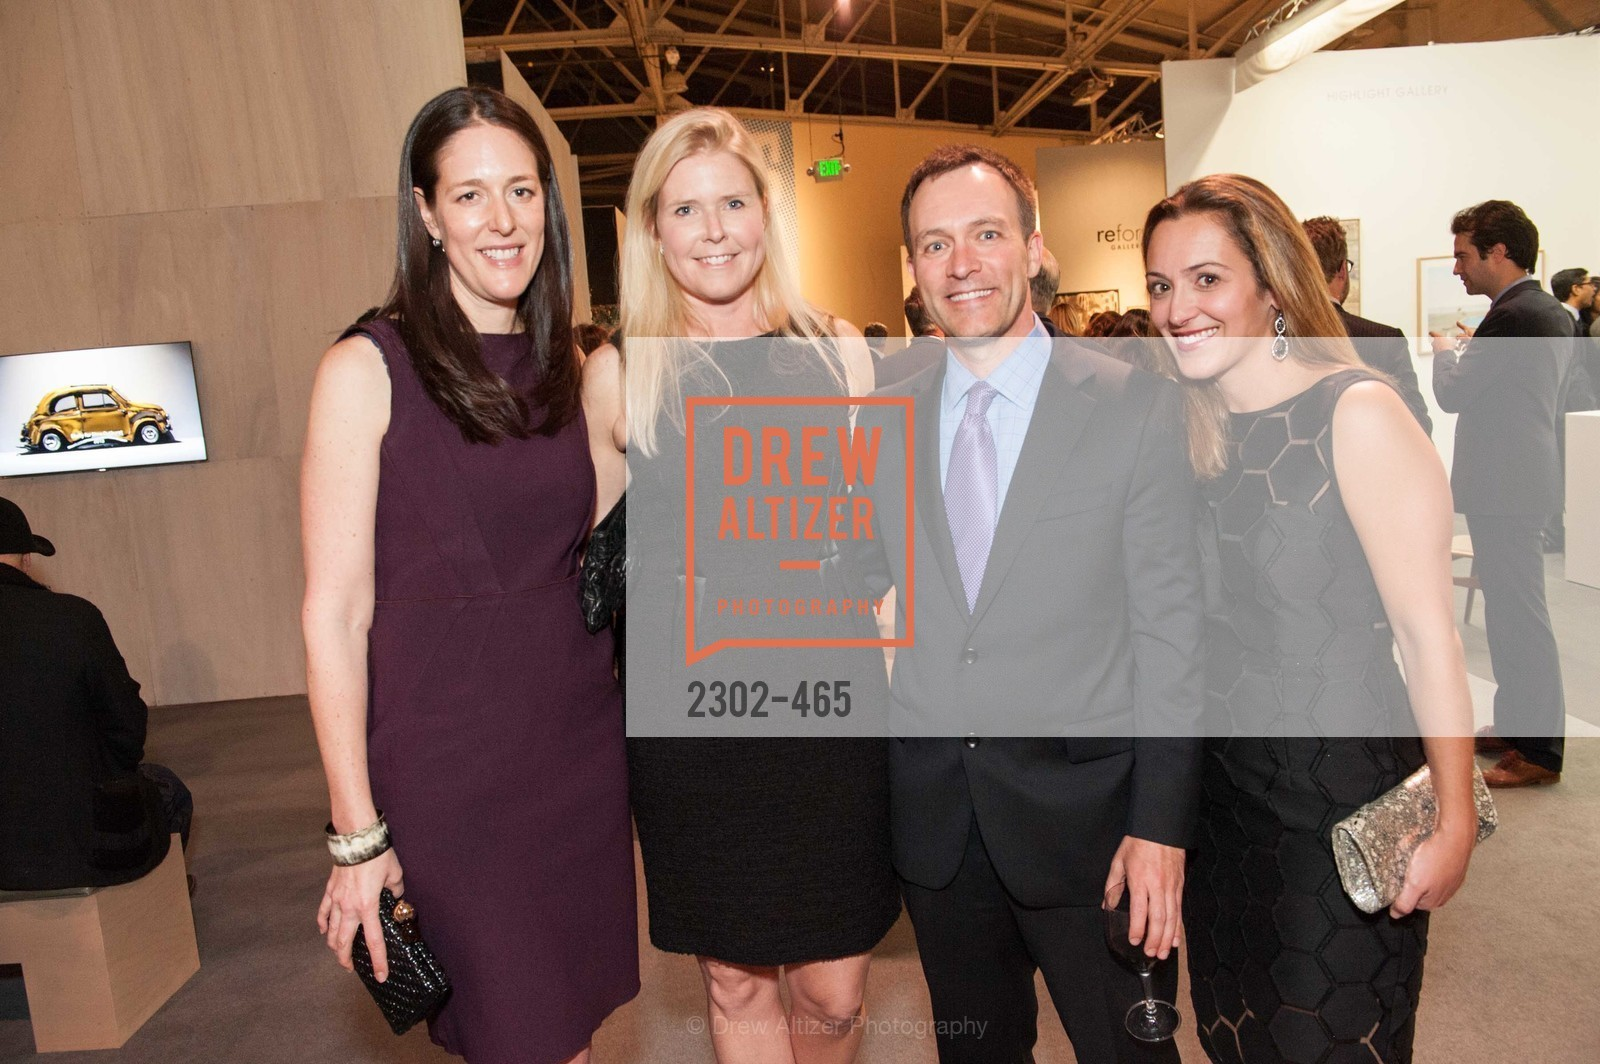 Lisa Targer, Virginia Tusher, Scott Crabill, Angela Crabill, FOG Design + Art Preview Gala, US. US, January 16th, 2014,Drew Altizer, Drew Altizer Photography, full-service event agency, private events, San Francisco photographer, photographer California